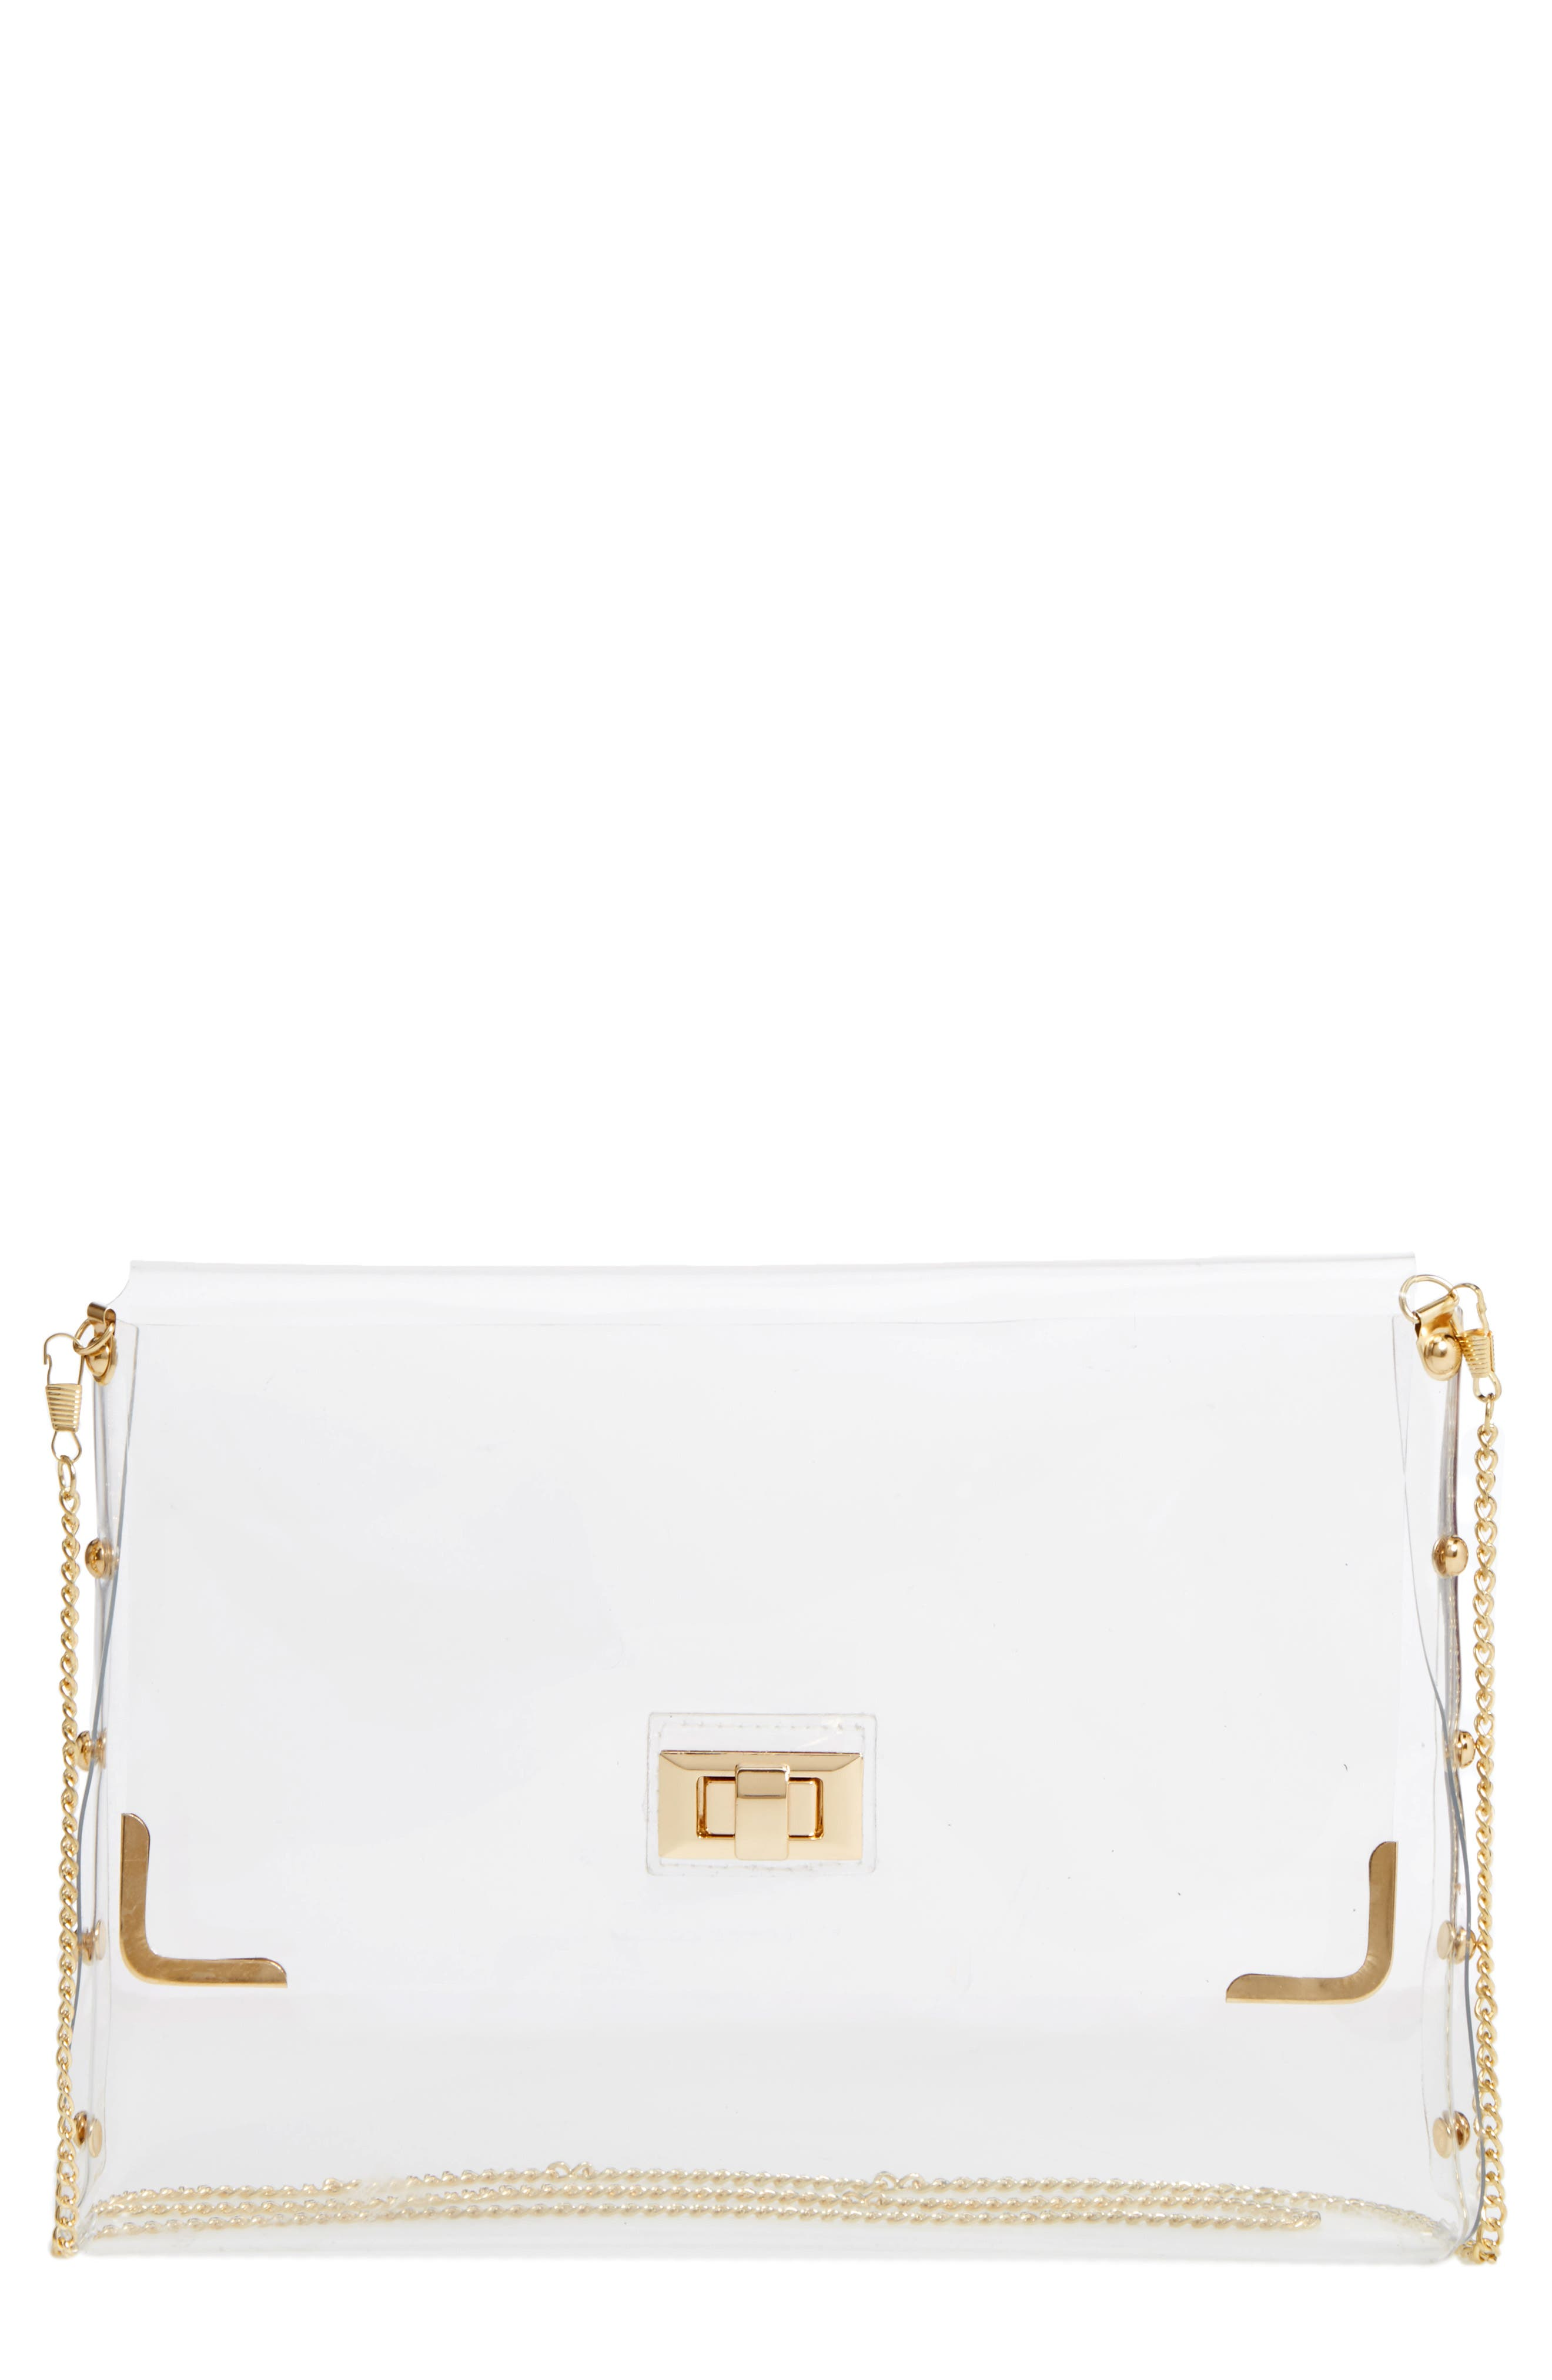 Amici Accessories Clear Crossbody Bag